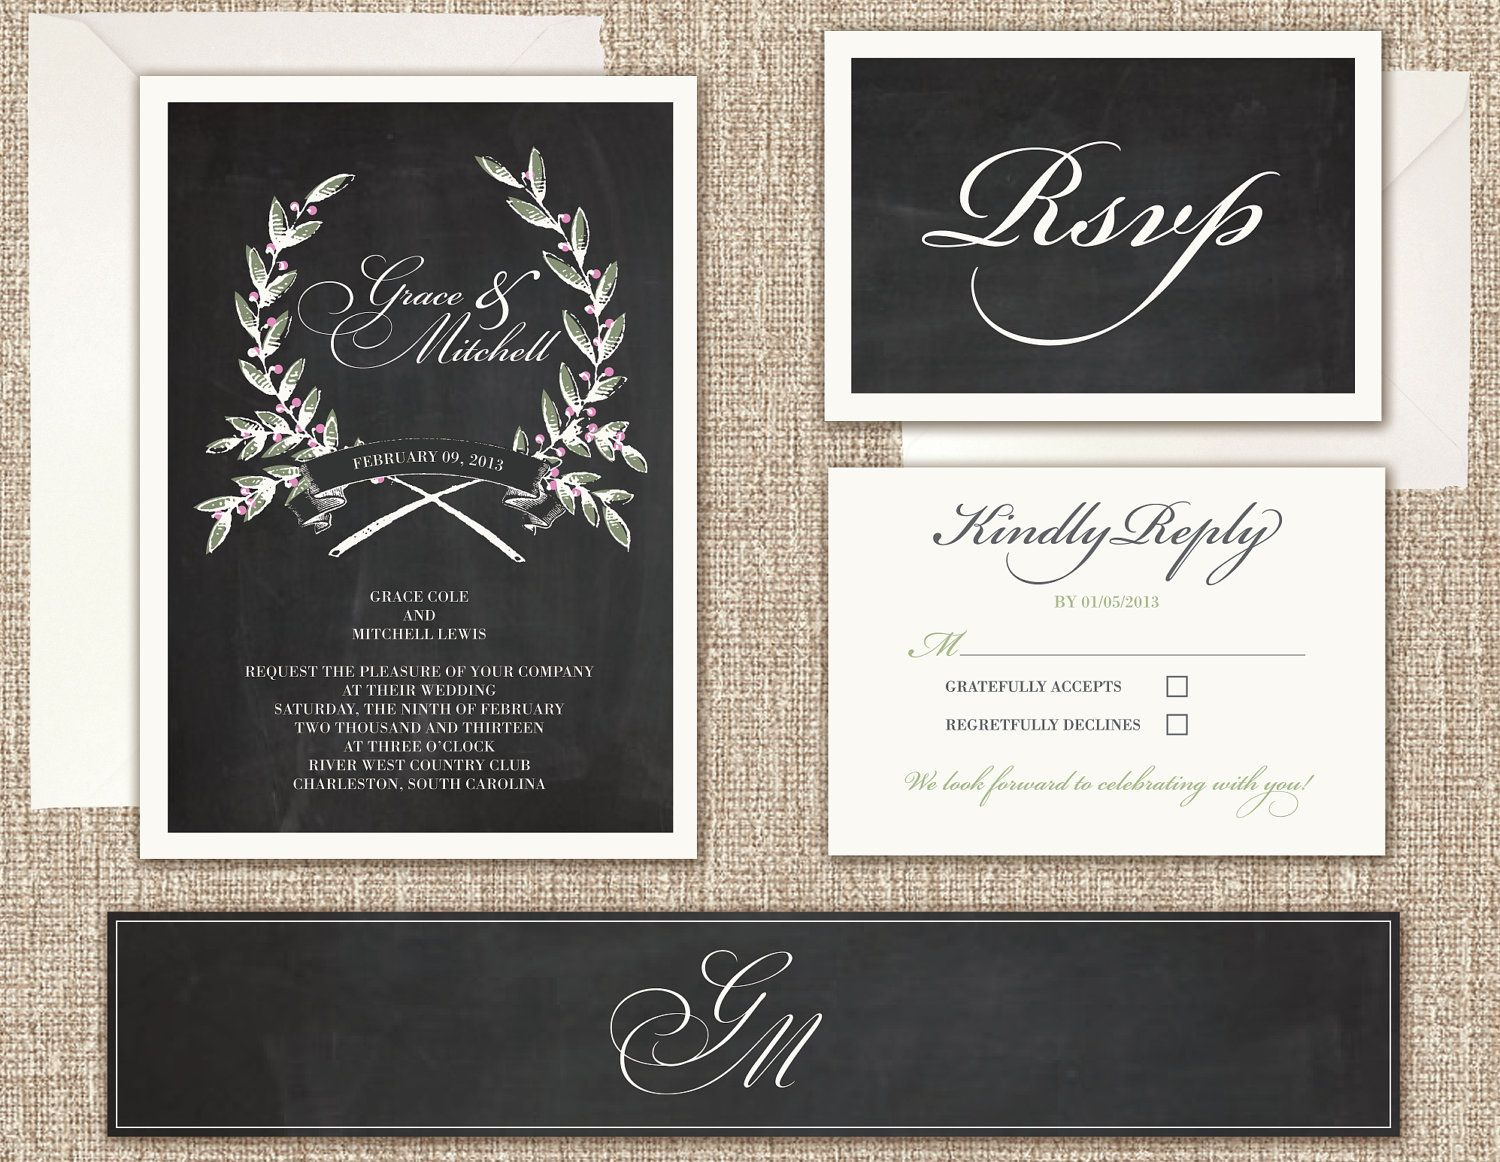 Rustic Modern Wedding Invitations with a Chalkboard Texture (Sample ...